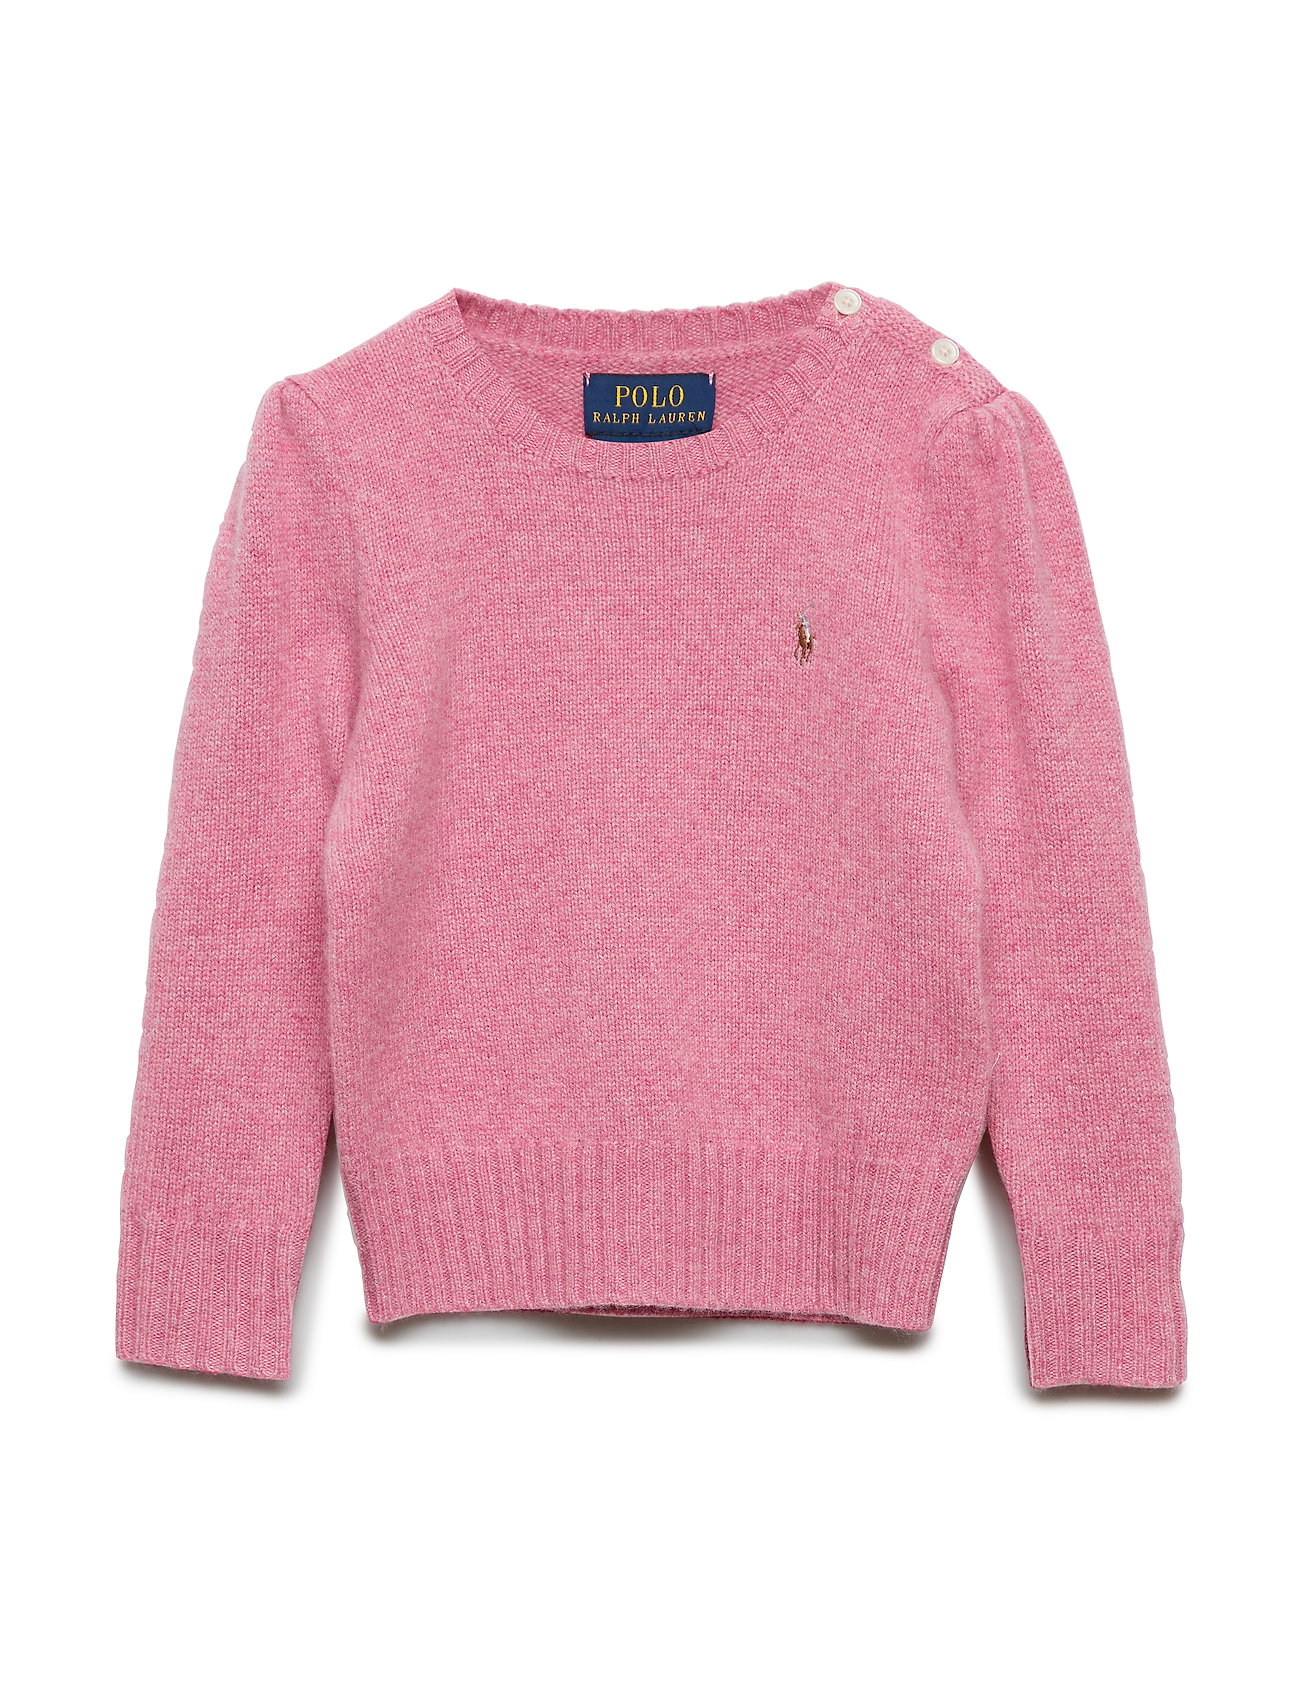 Ralph Lauren Kids Wool-Cashmere Crewneck Sweater - WINE ROSE HEATHER